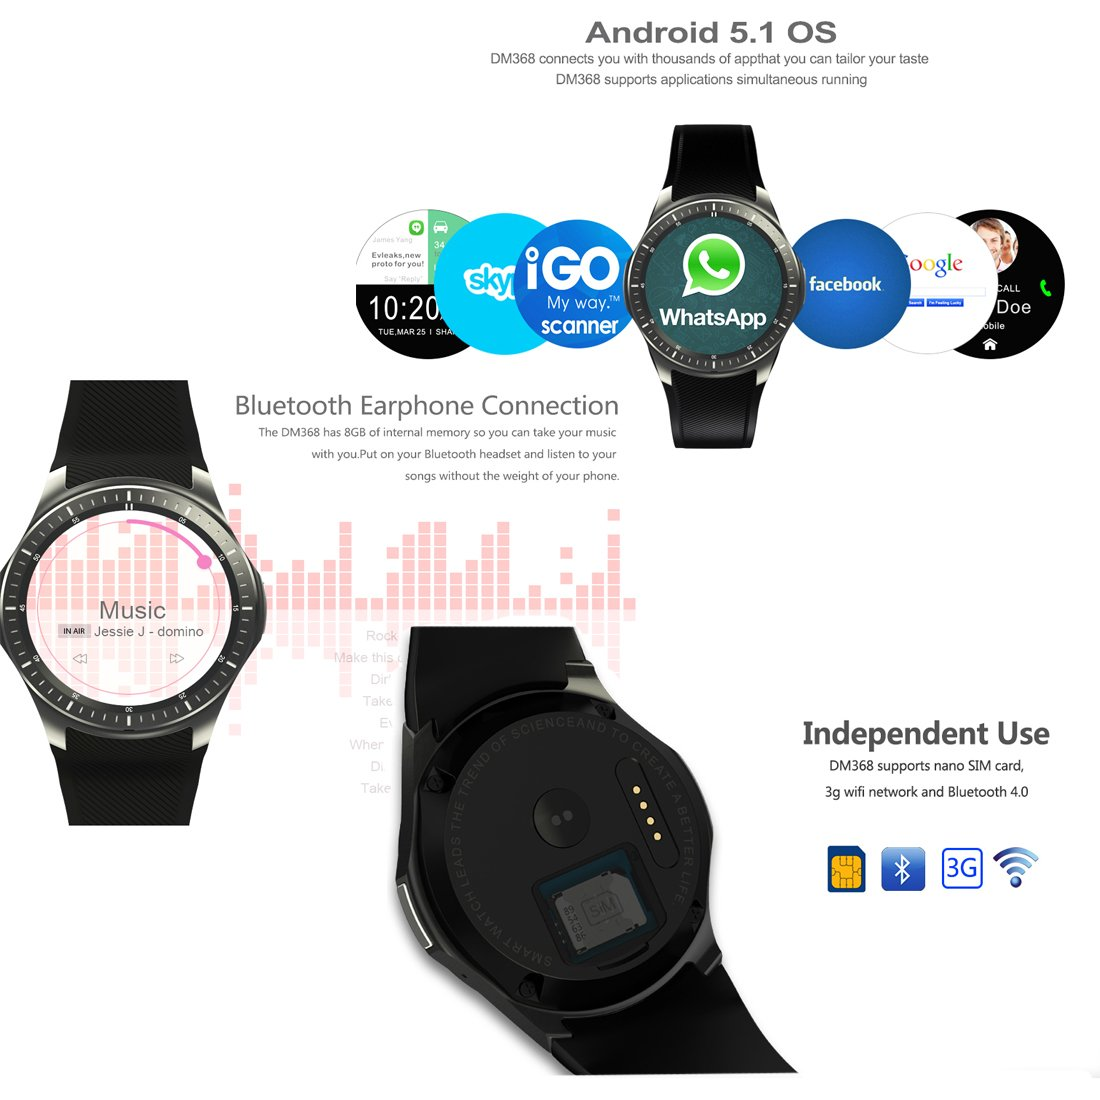 3 G WiFi Bluetooth Smart Watch funda All-in-One Android 5.1 DM368 ...